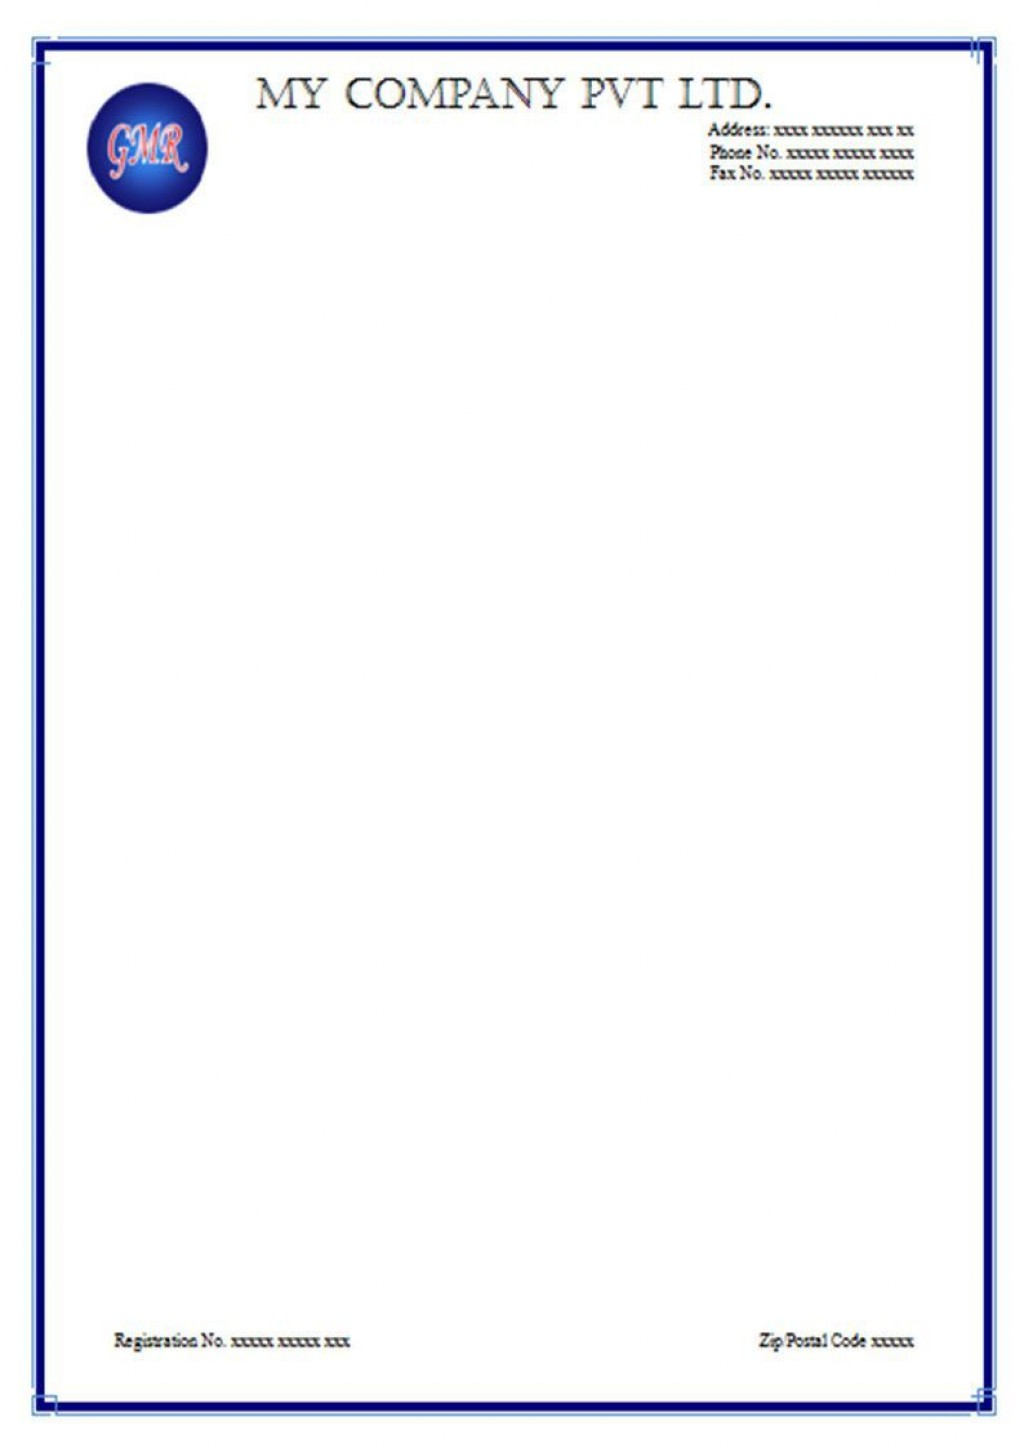 000 Shocking Free Letterhead Template Download Example  Word Psd SampleLarge